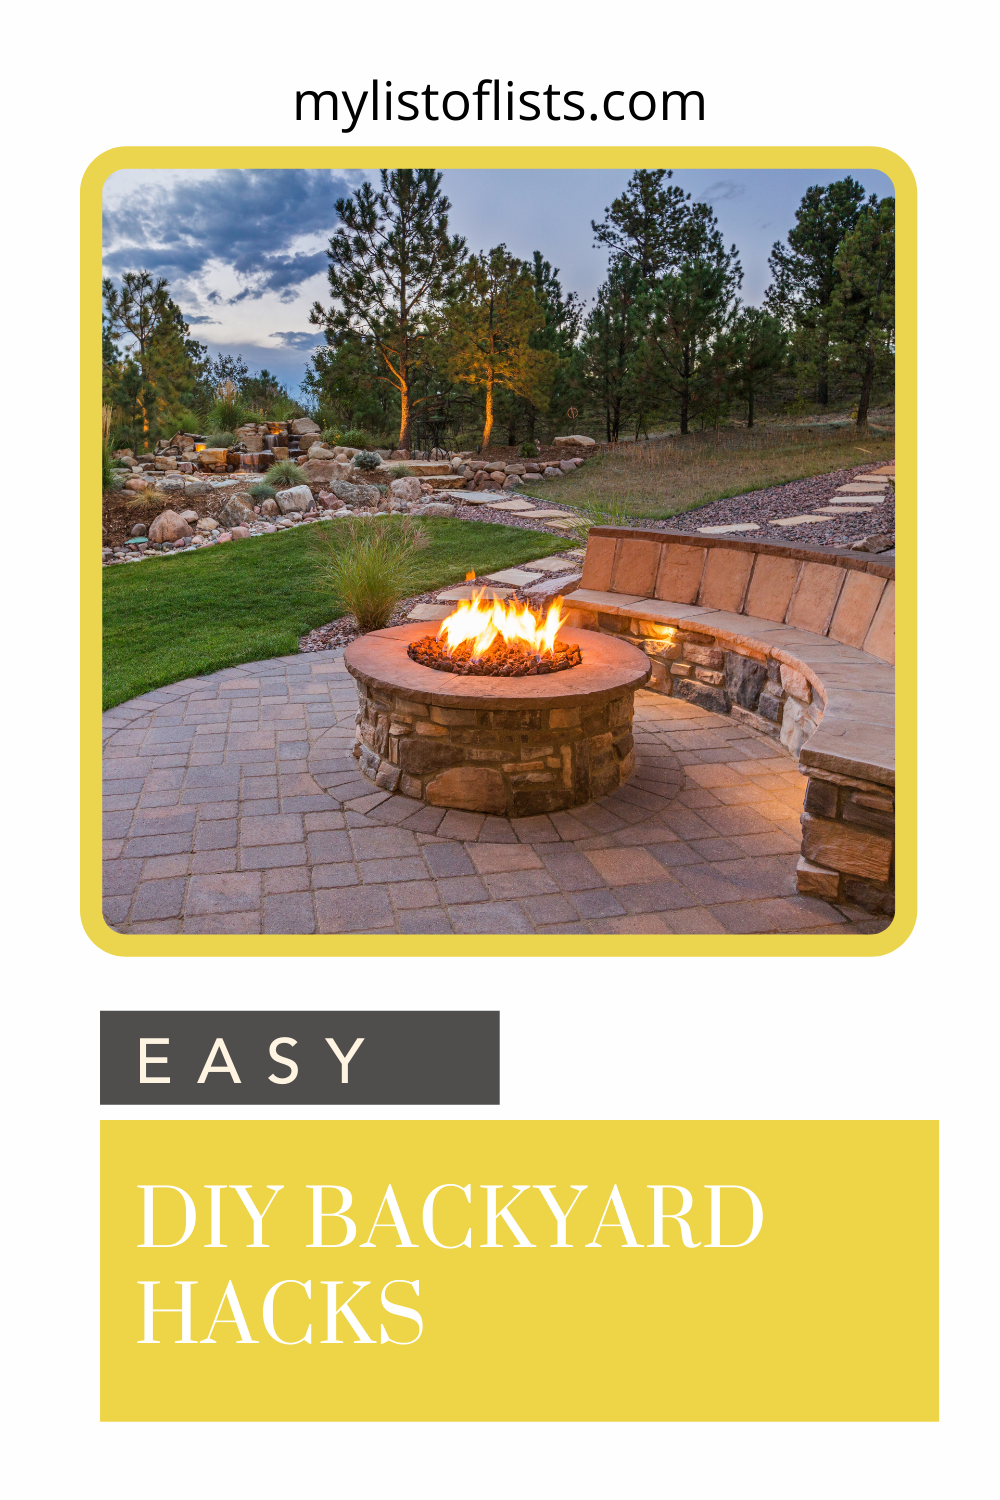 mylistoflsts.com is sharing awesome DIY backyard hacks to make your life and summer better. Try these hacks to make the most of your time outdoors with friends and family.